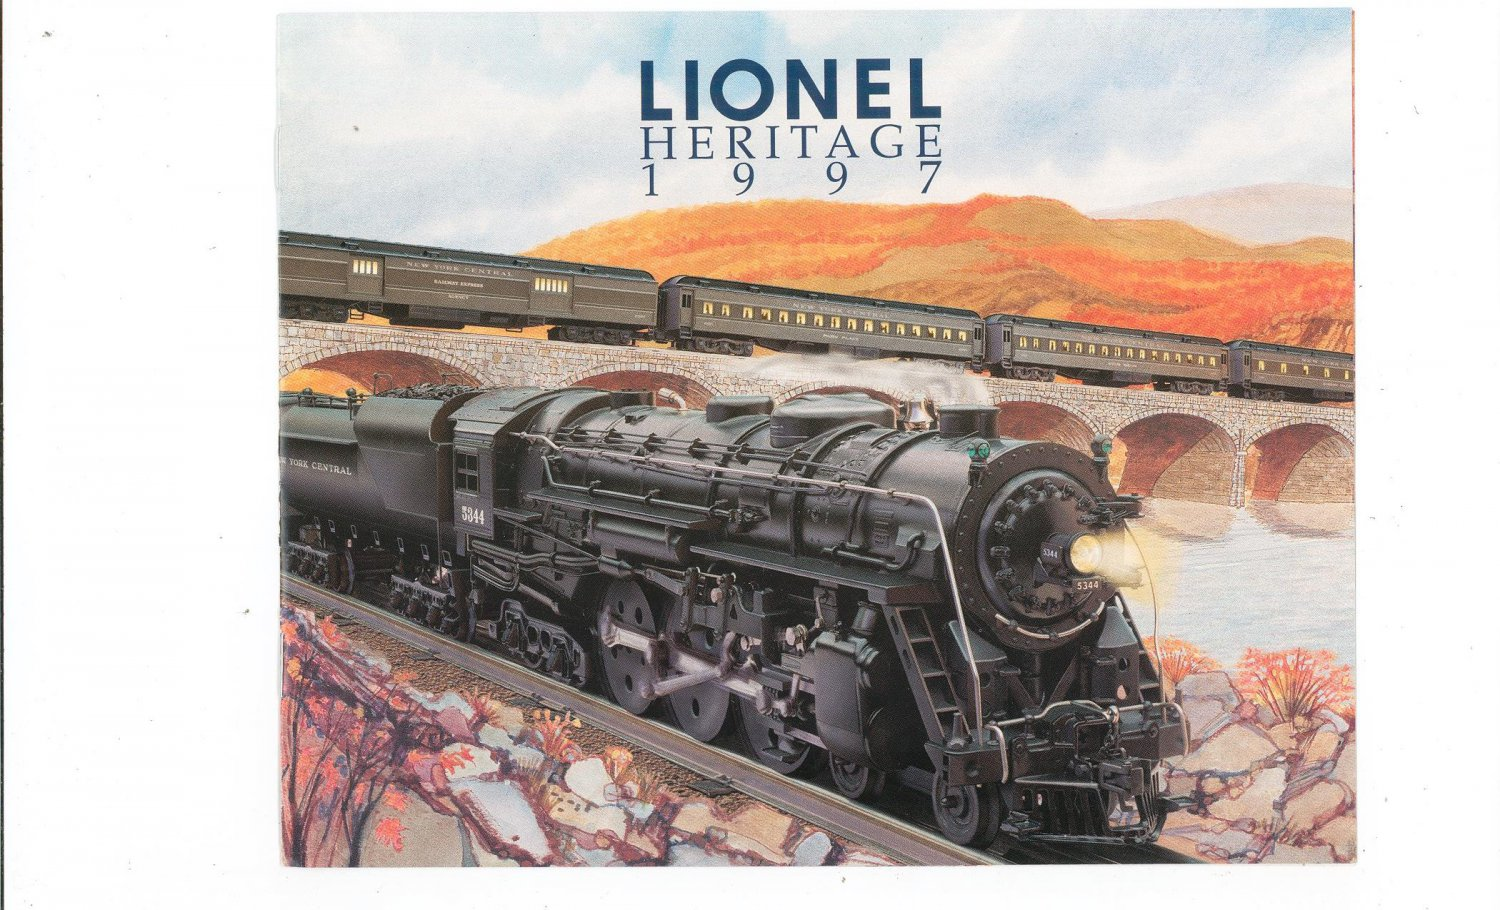 Lionel Heritage Trains Catalog 1997 Not PDF Free Shipping Offer